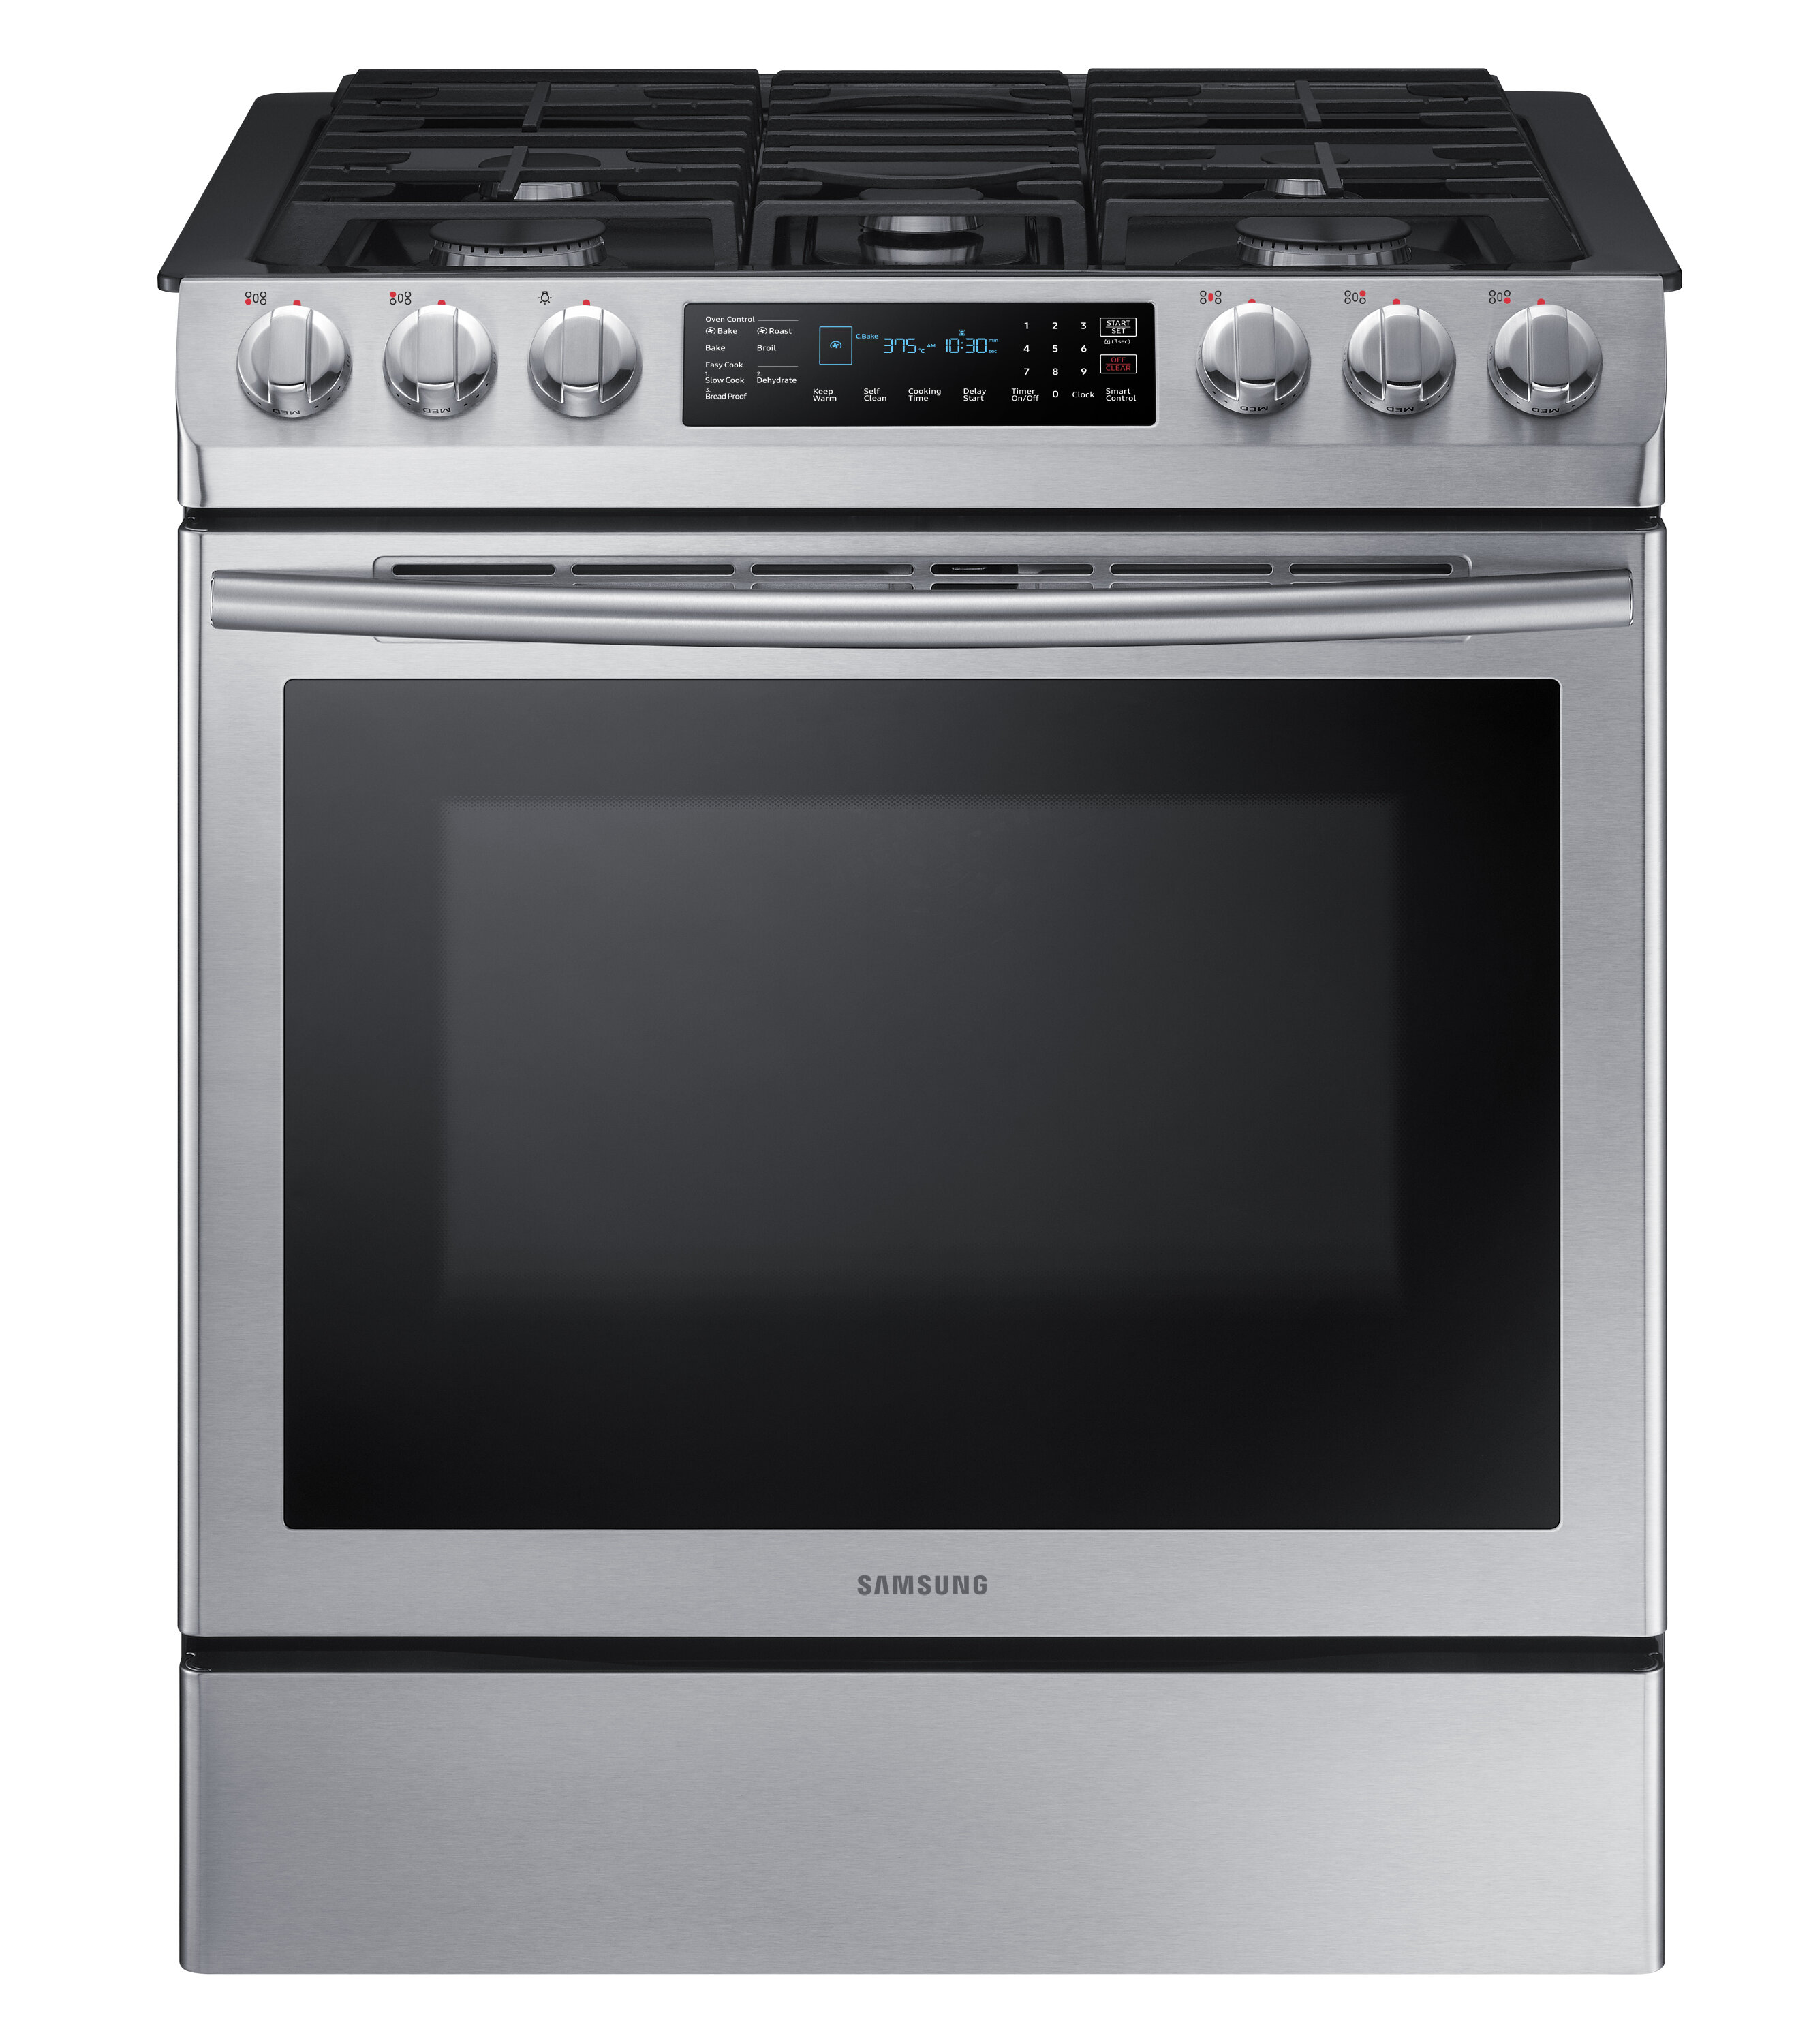 Samsung 30 5 8 Cu Ft Smart Slide In Gas Range With Convection